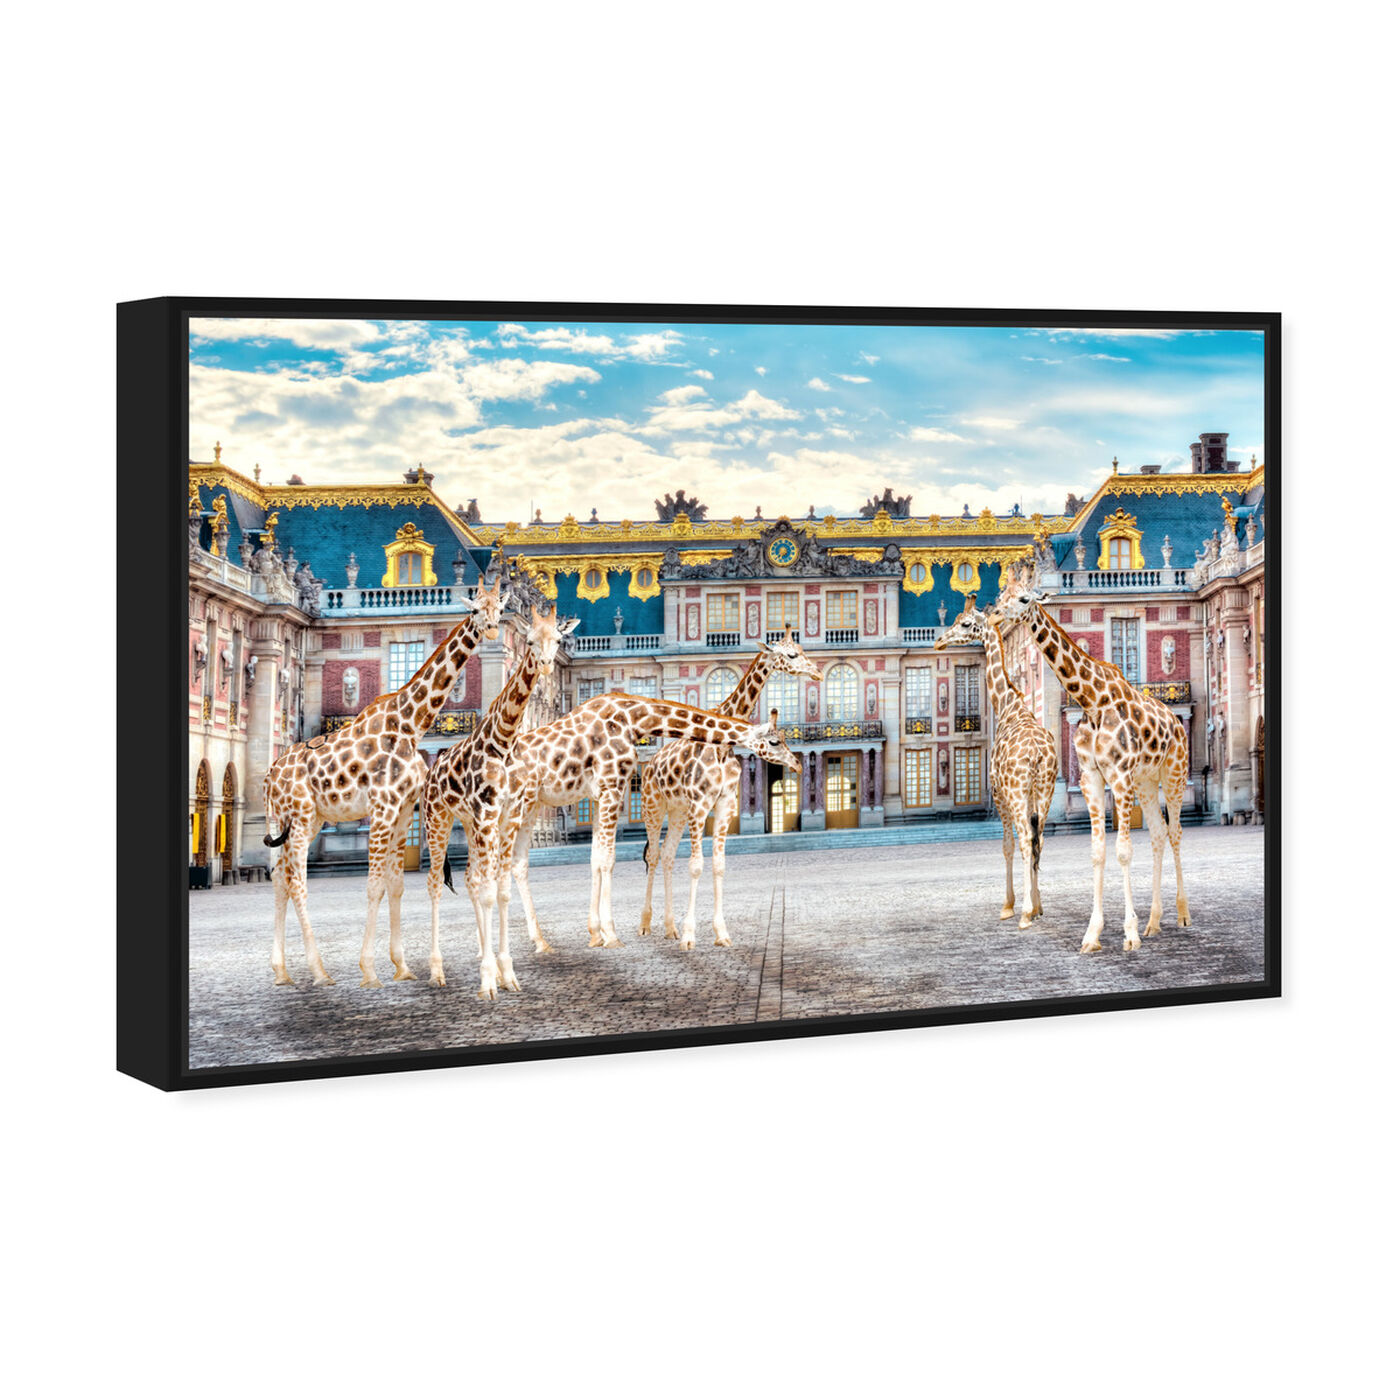 Angled view of Giraffe Palace Assembly featuring animals and zoo and wild animals art.